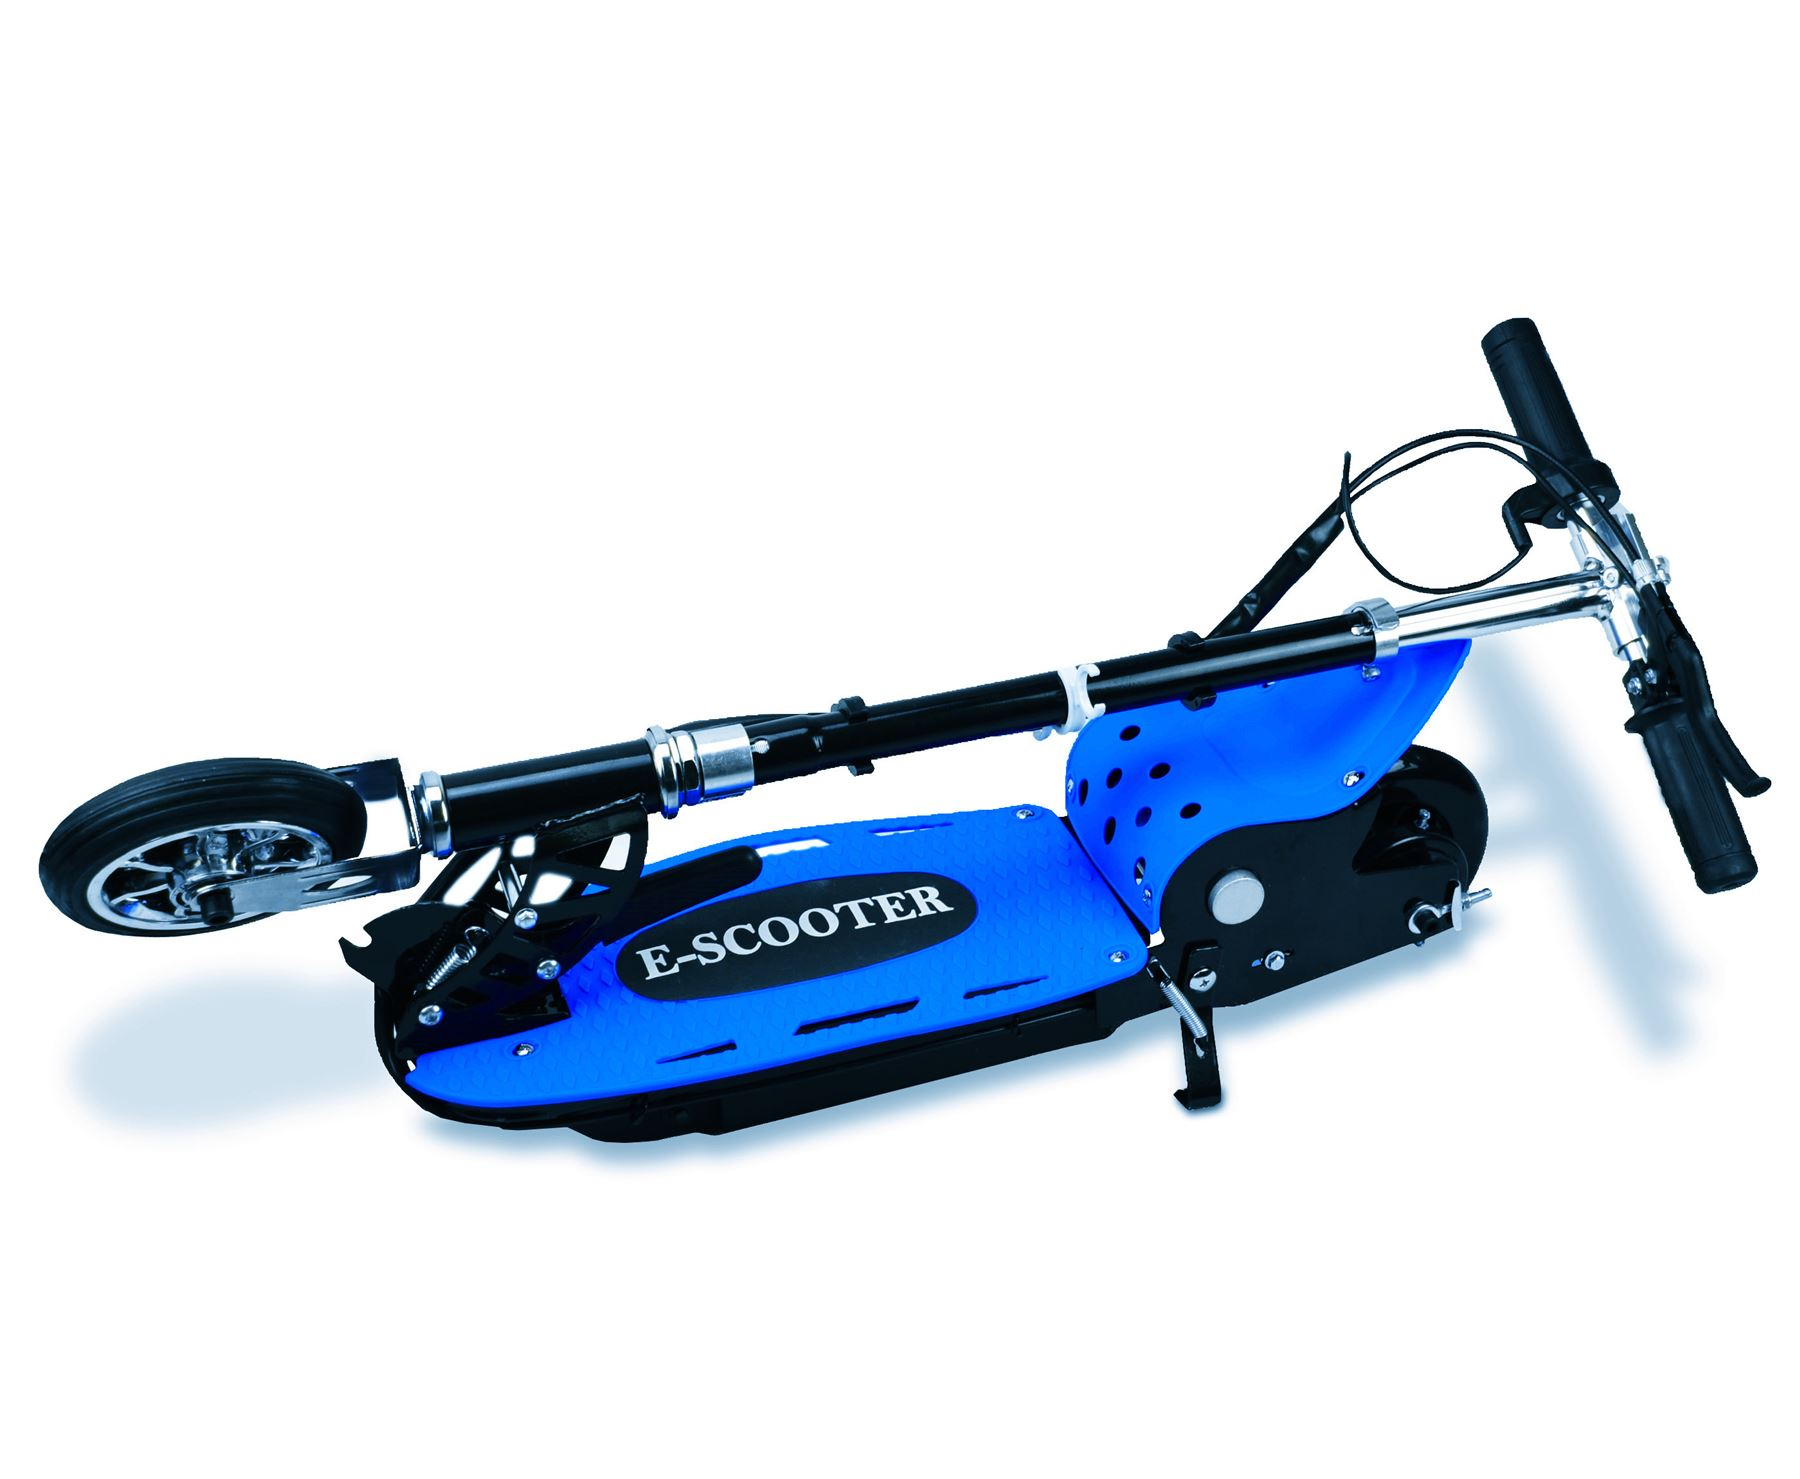 New Electric E Scooter Kids Children Ride on Toys 120W 12V Battery